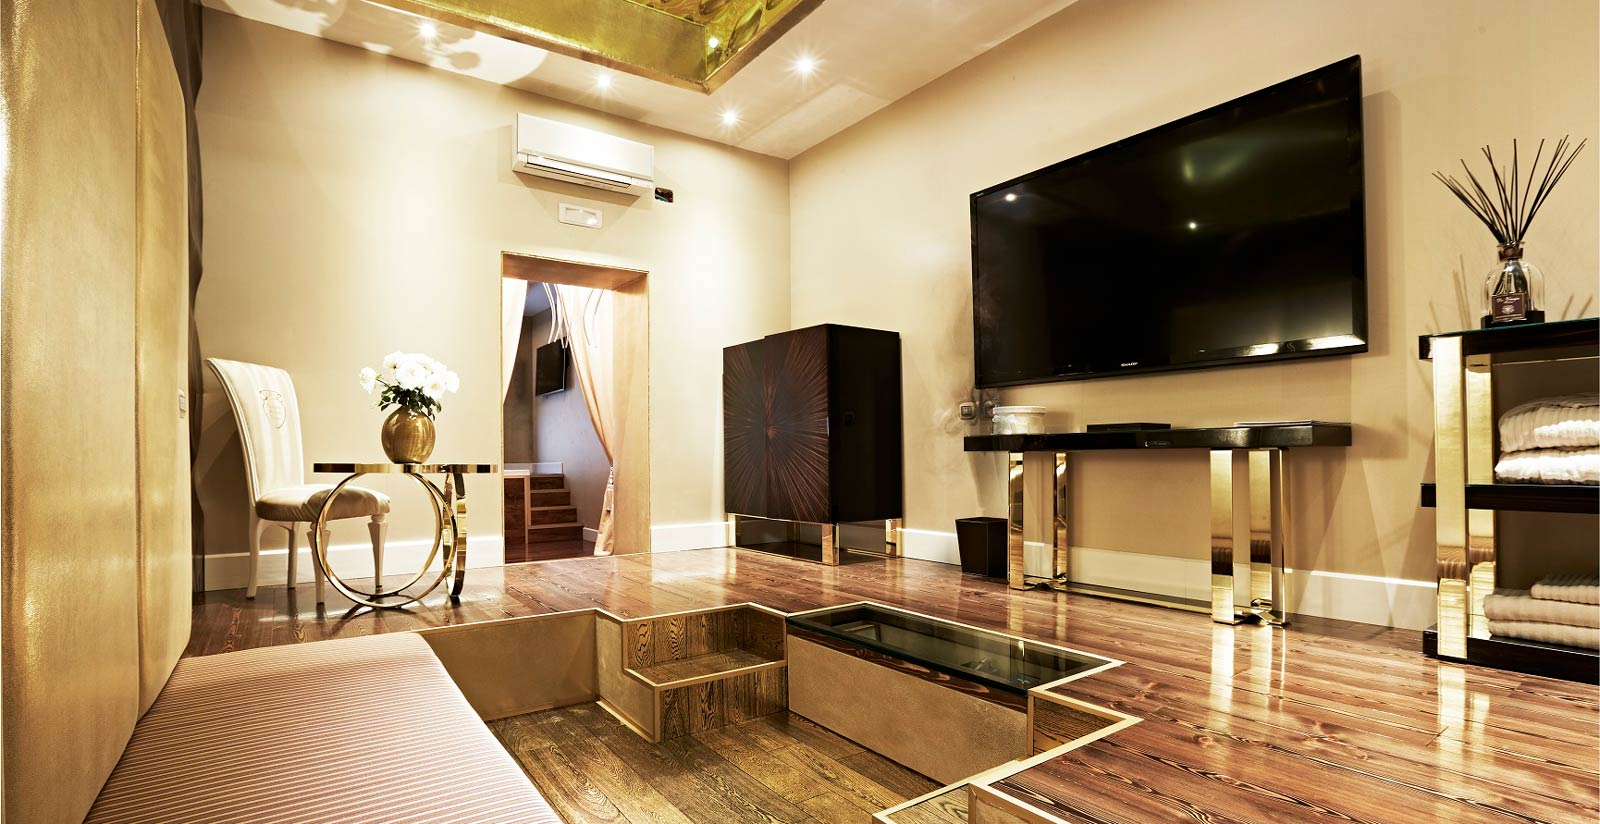 Book At Spagna Royal Suite In Rome Via The Official Website